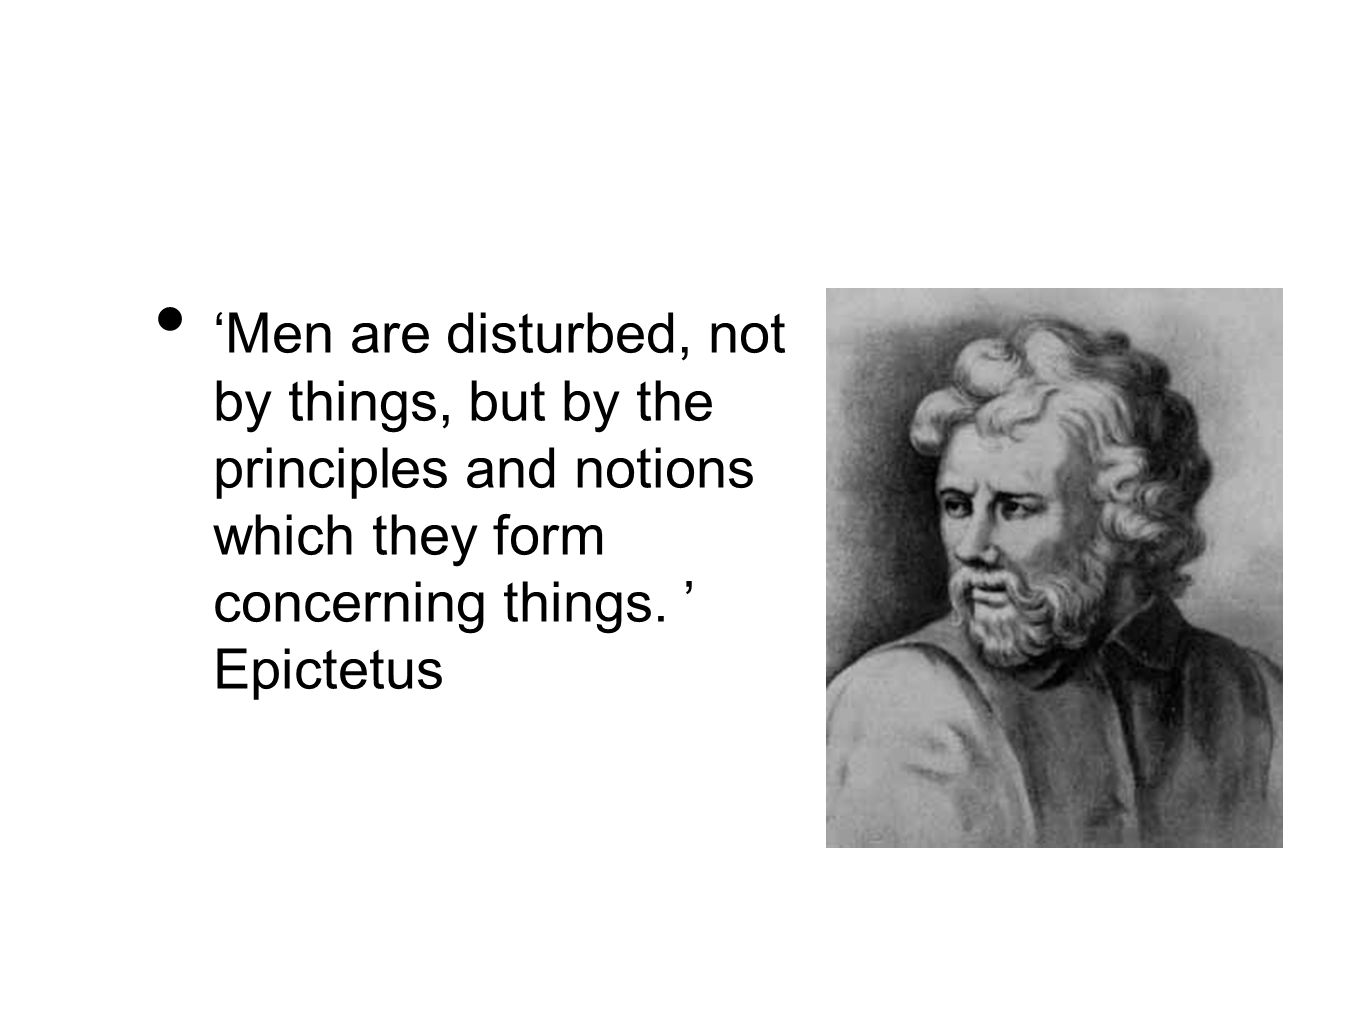 'Men are disturbed, not by things, but by the principles and notions which they form concerning things.